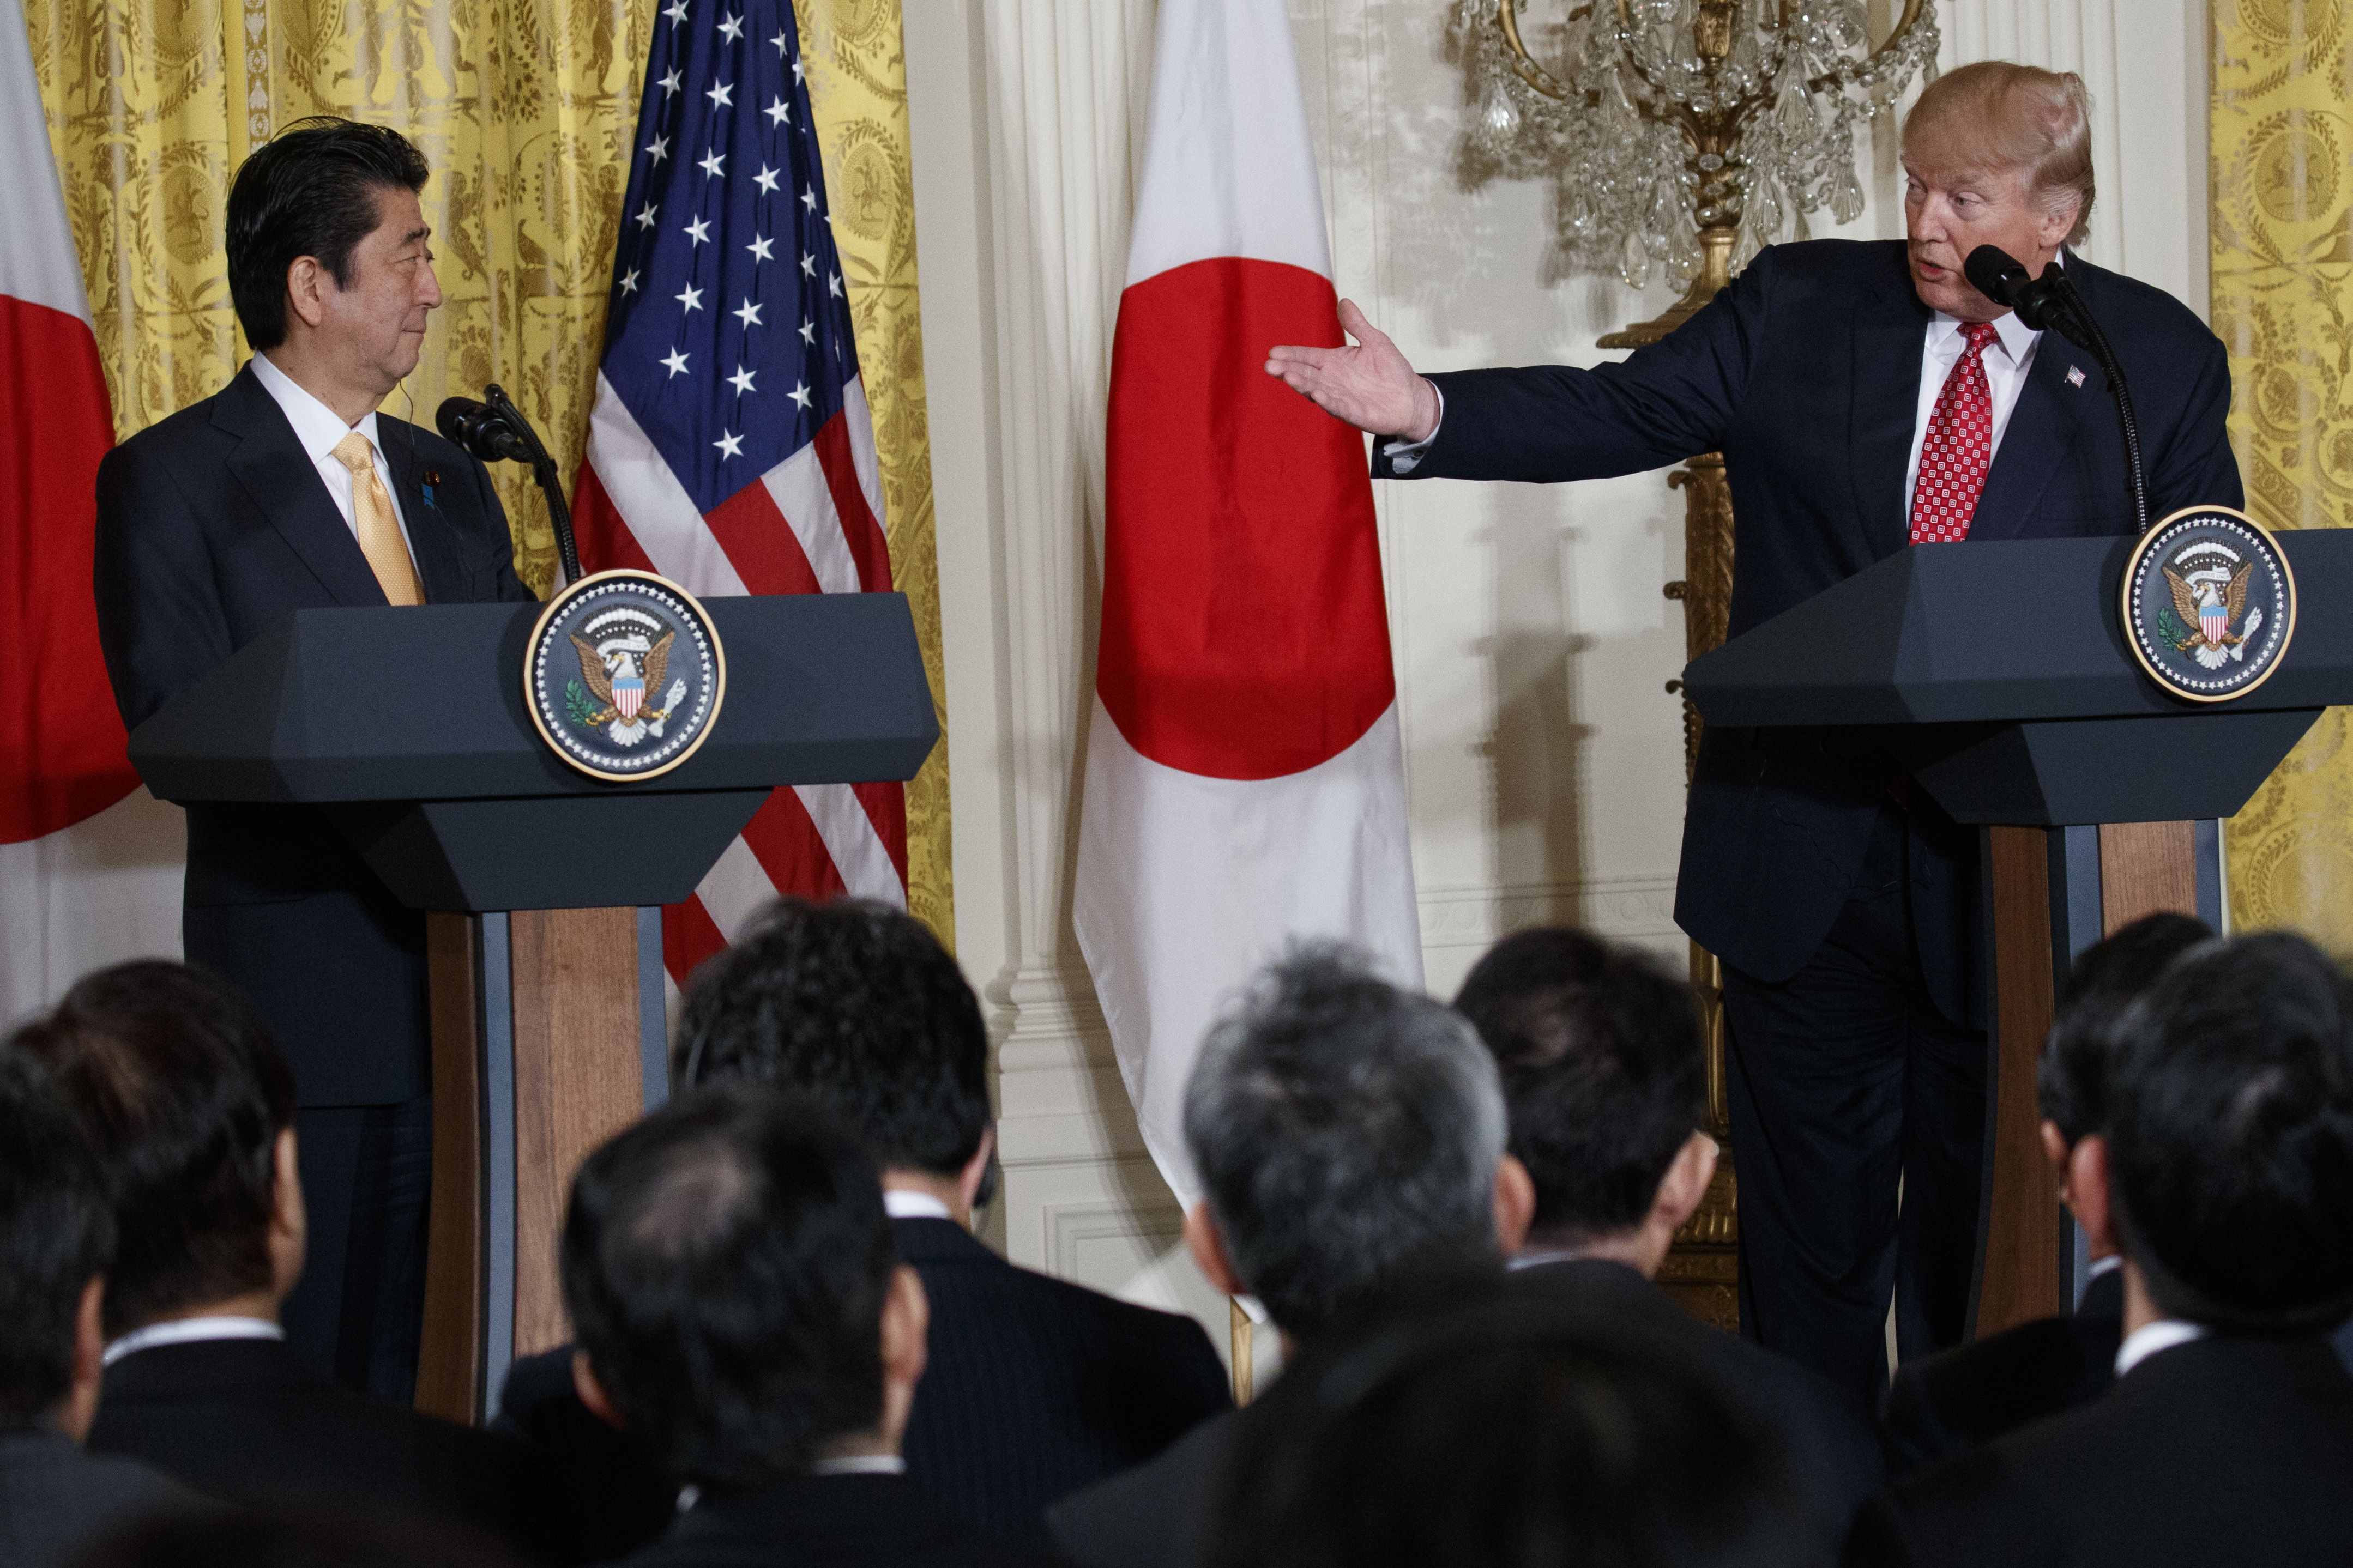 President Trump and Japanese Prime Minister Shinzo Abe hold a joint news conference at the White House.